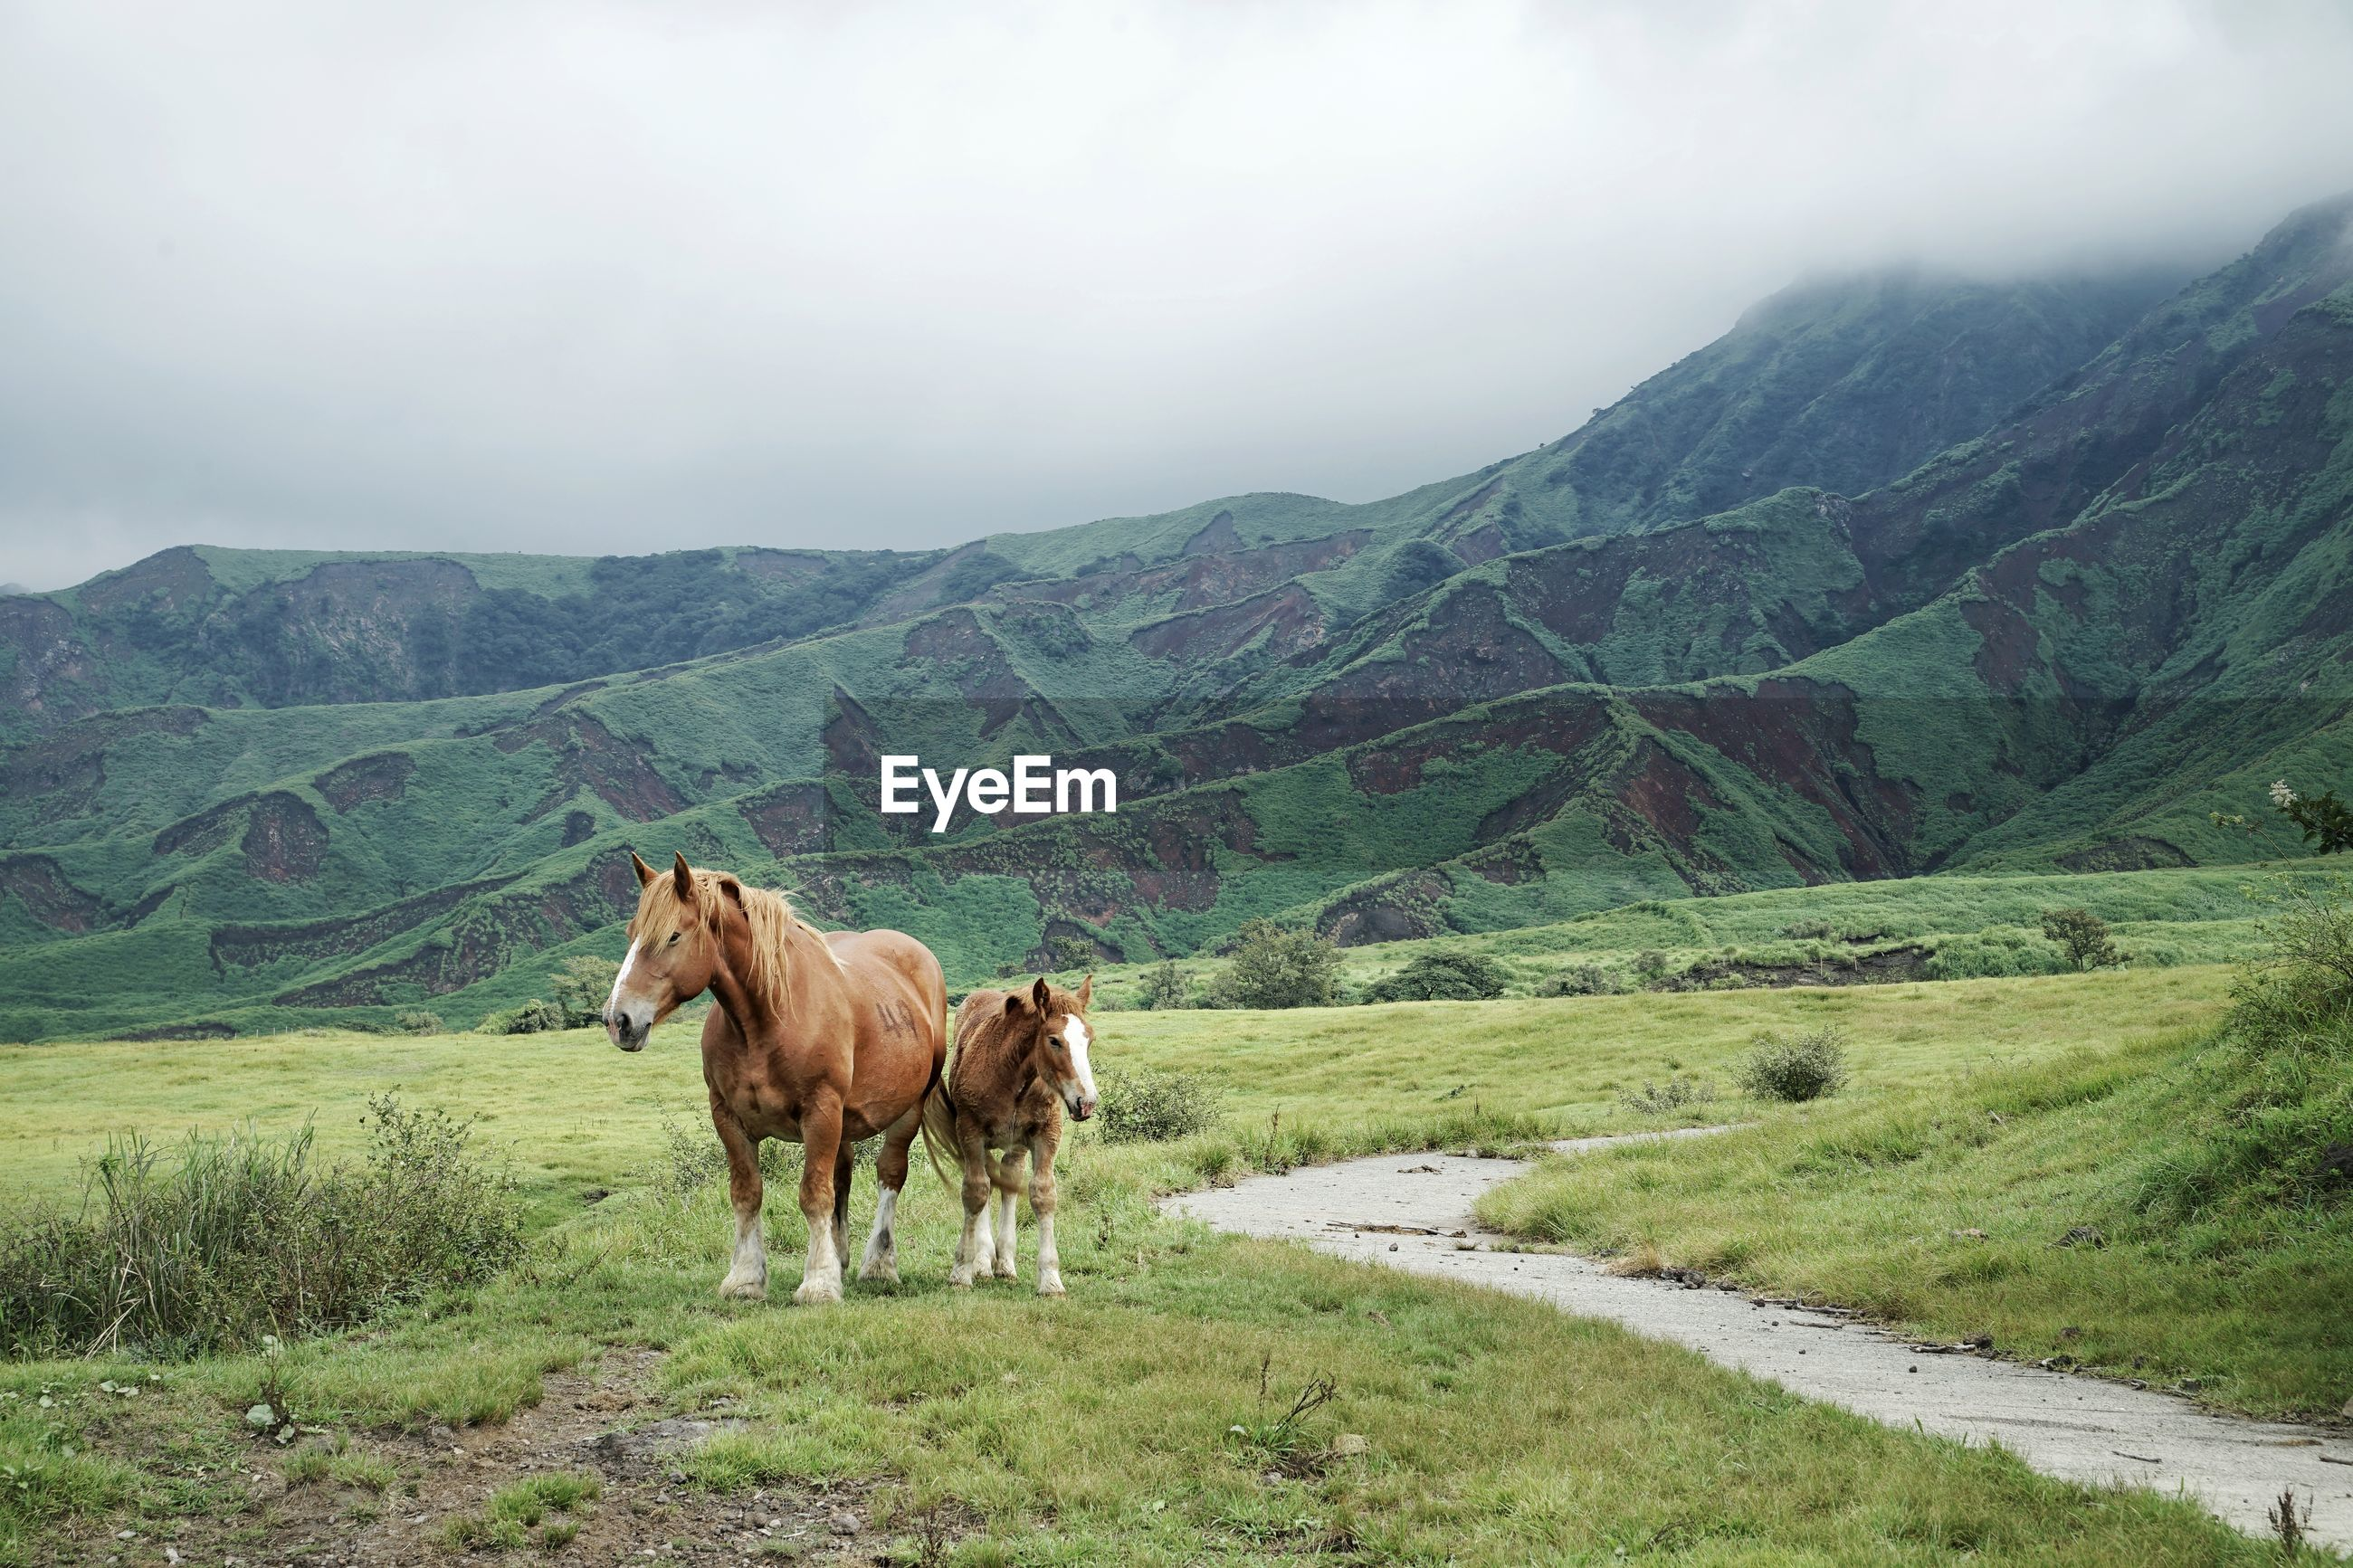 Horses in mount aso